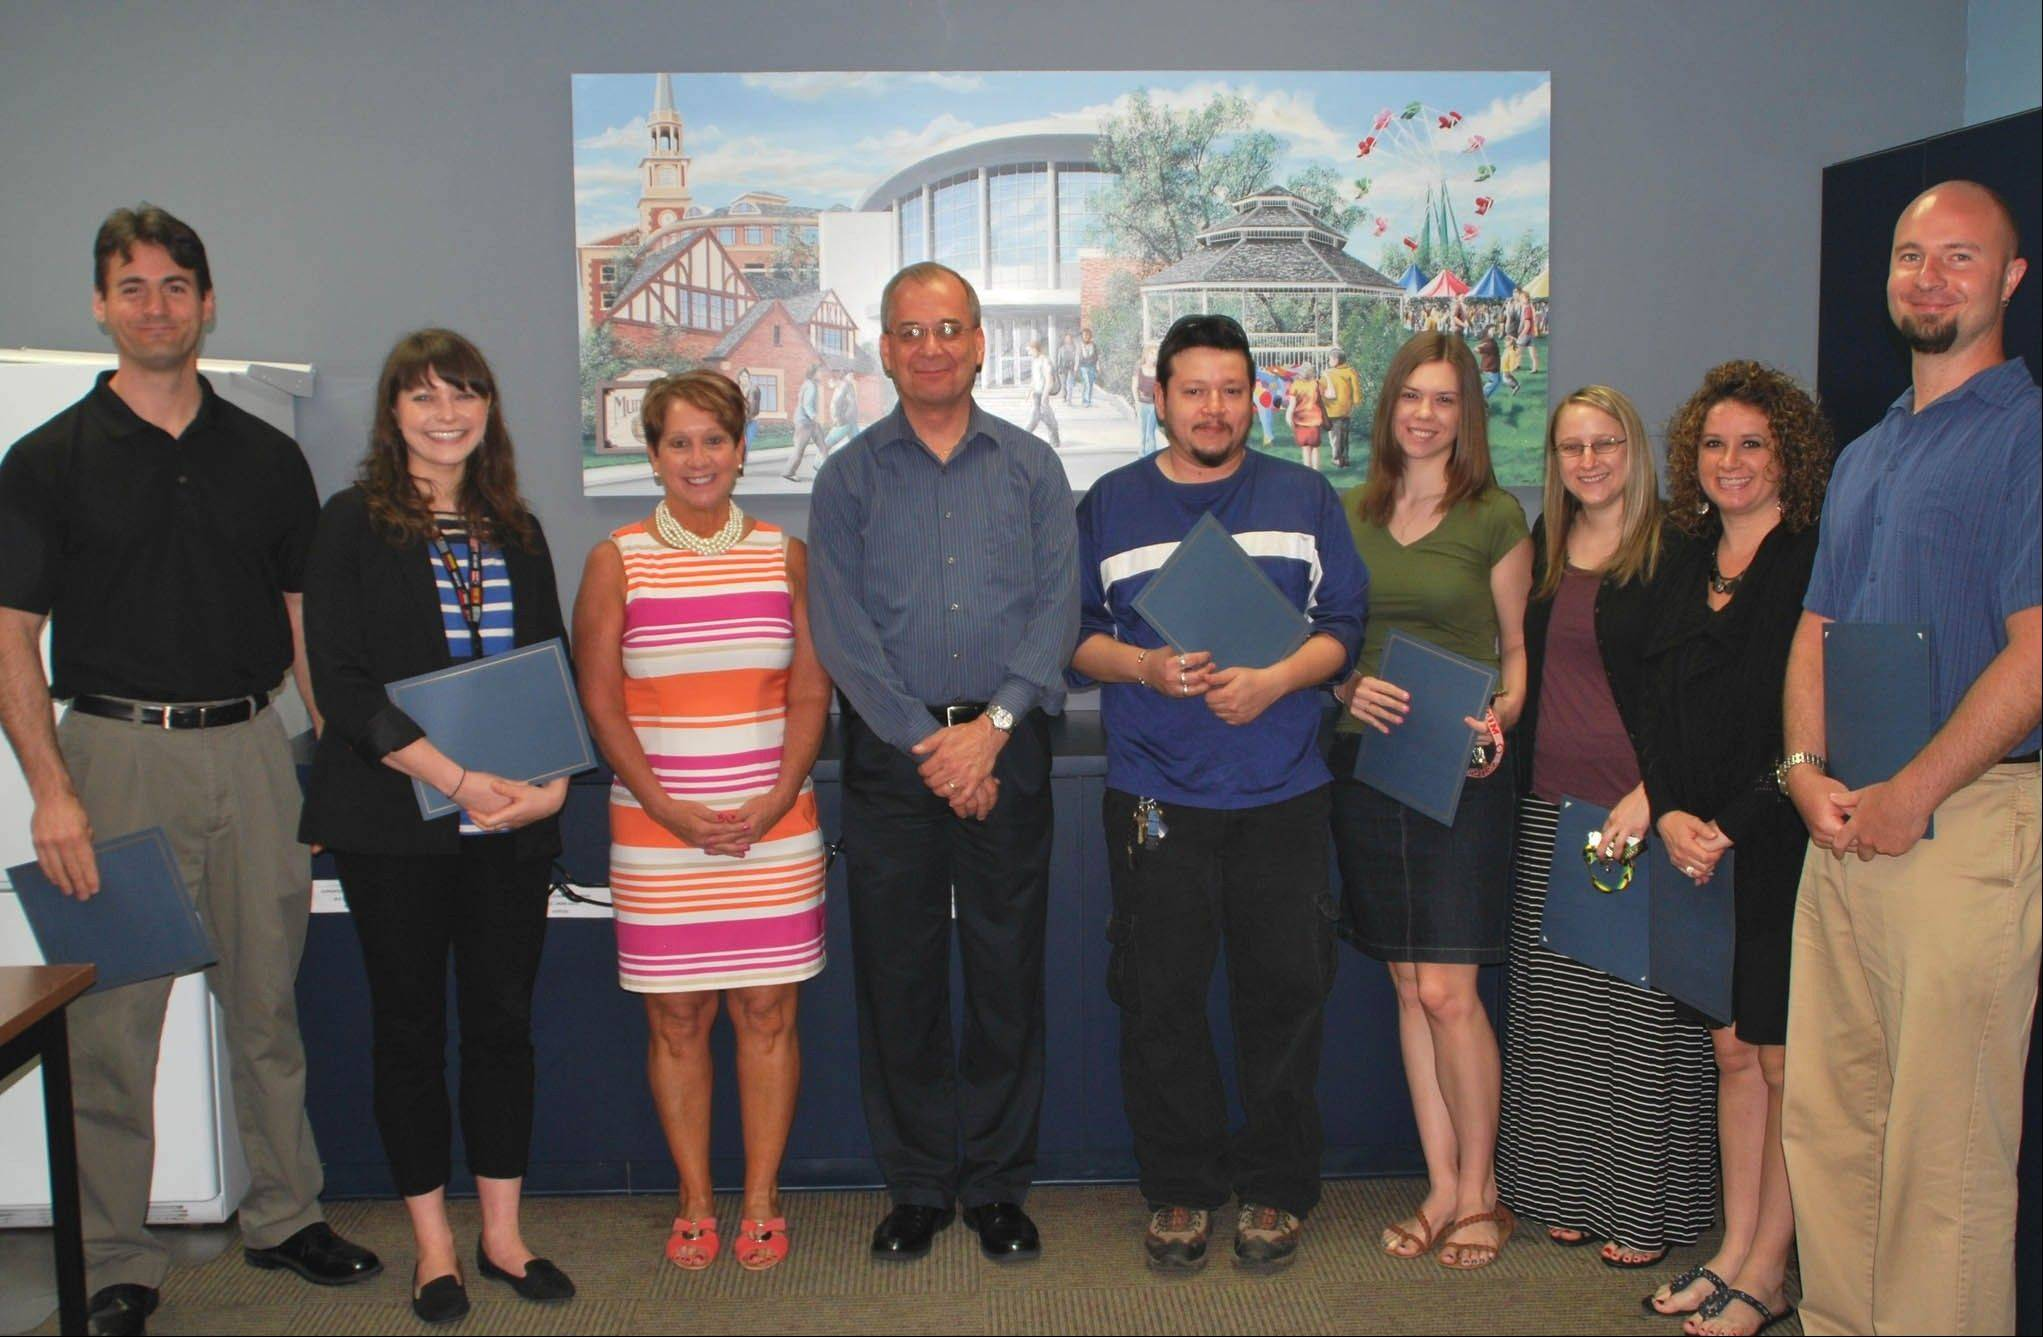 Mundelein High School faculty members, from left, Mike Hickey, Blair Winter, superintendent Jody Ware, Paul Havlik, Rodolfo Cabrera, Katie Giambeluca, Jamie Moderhack, Maureen Baker and Mark Michalski received grants for special projects at a recent ceremony.